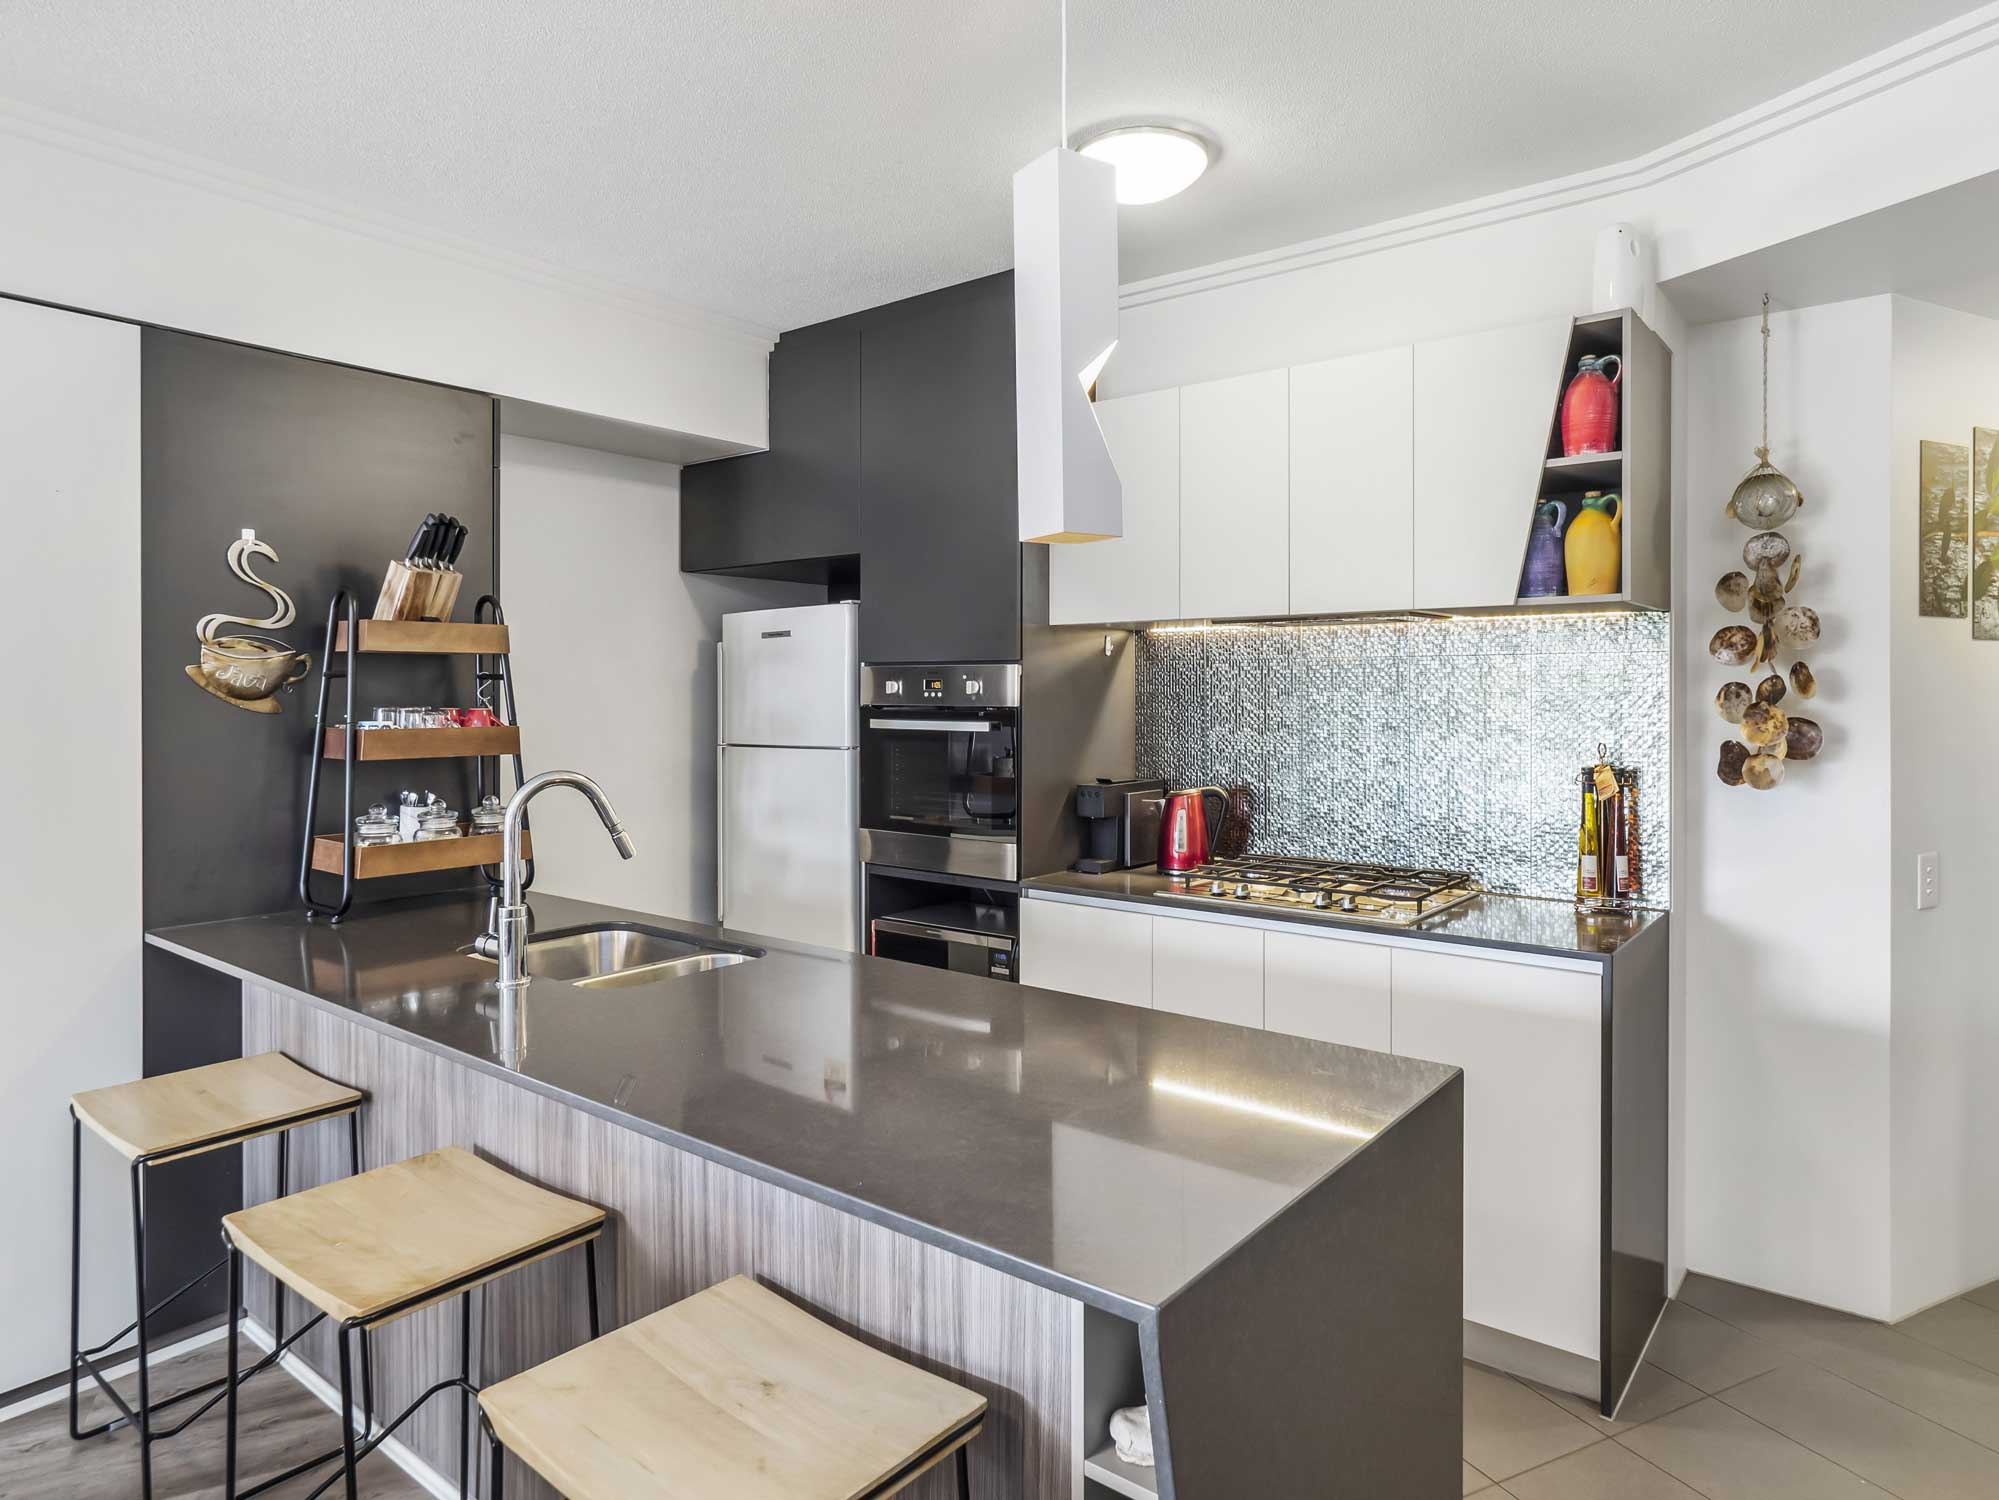 Real estate photography of Kangaroo Point apartment for sale - the kitchen